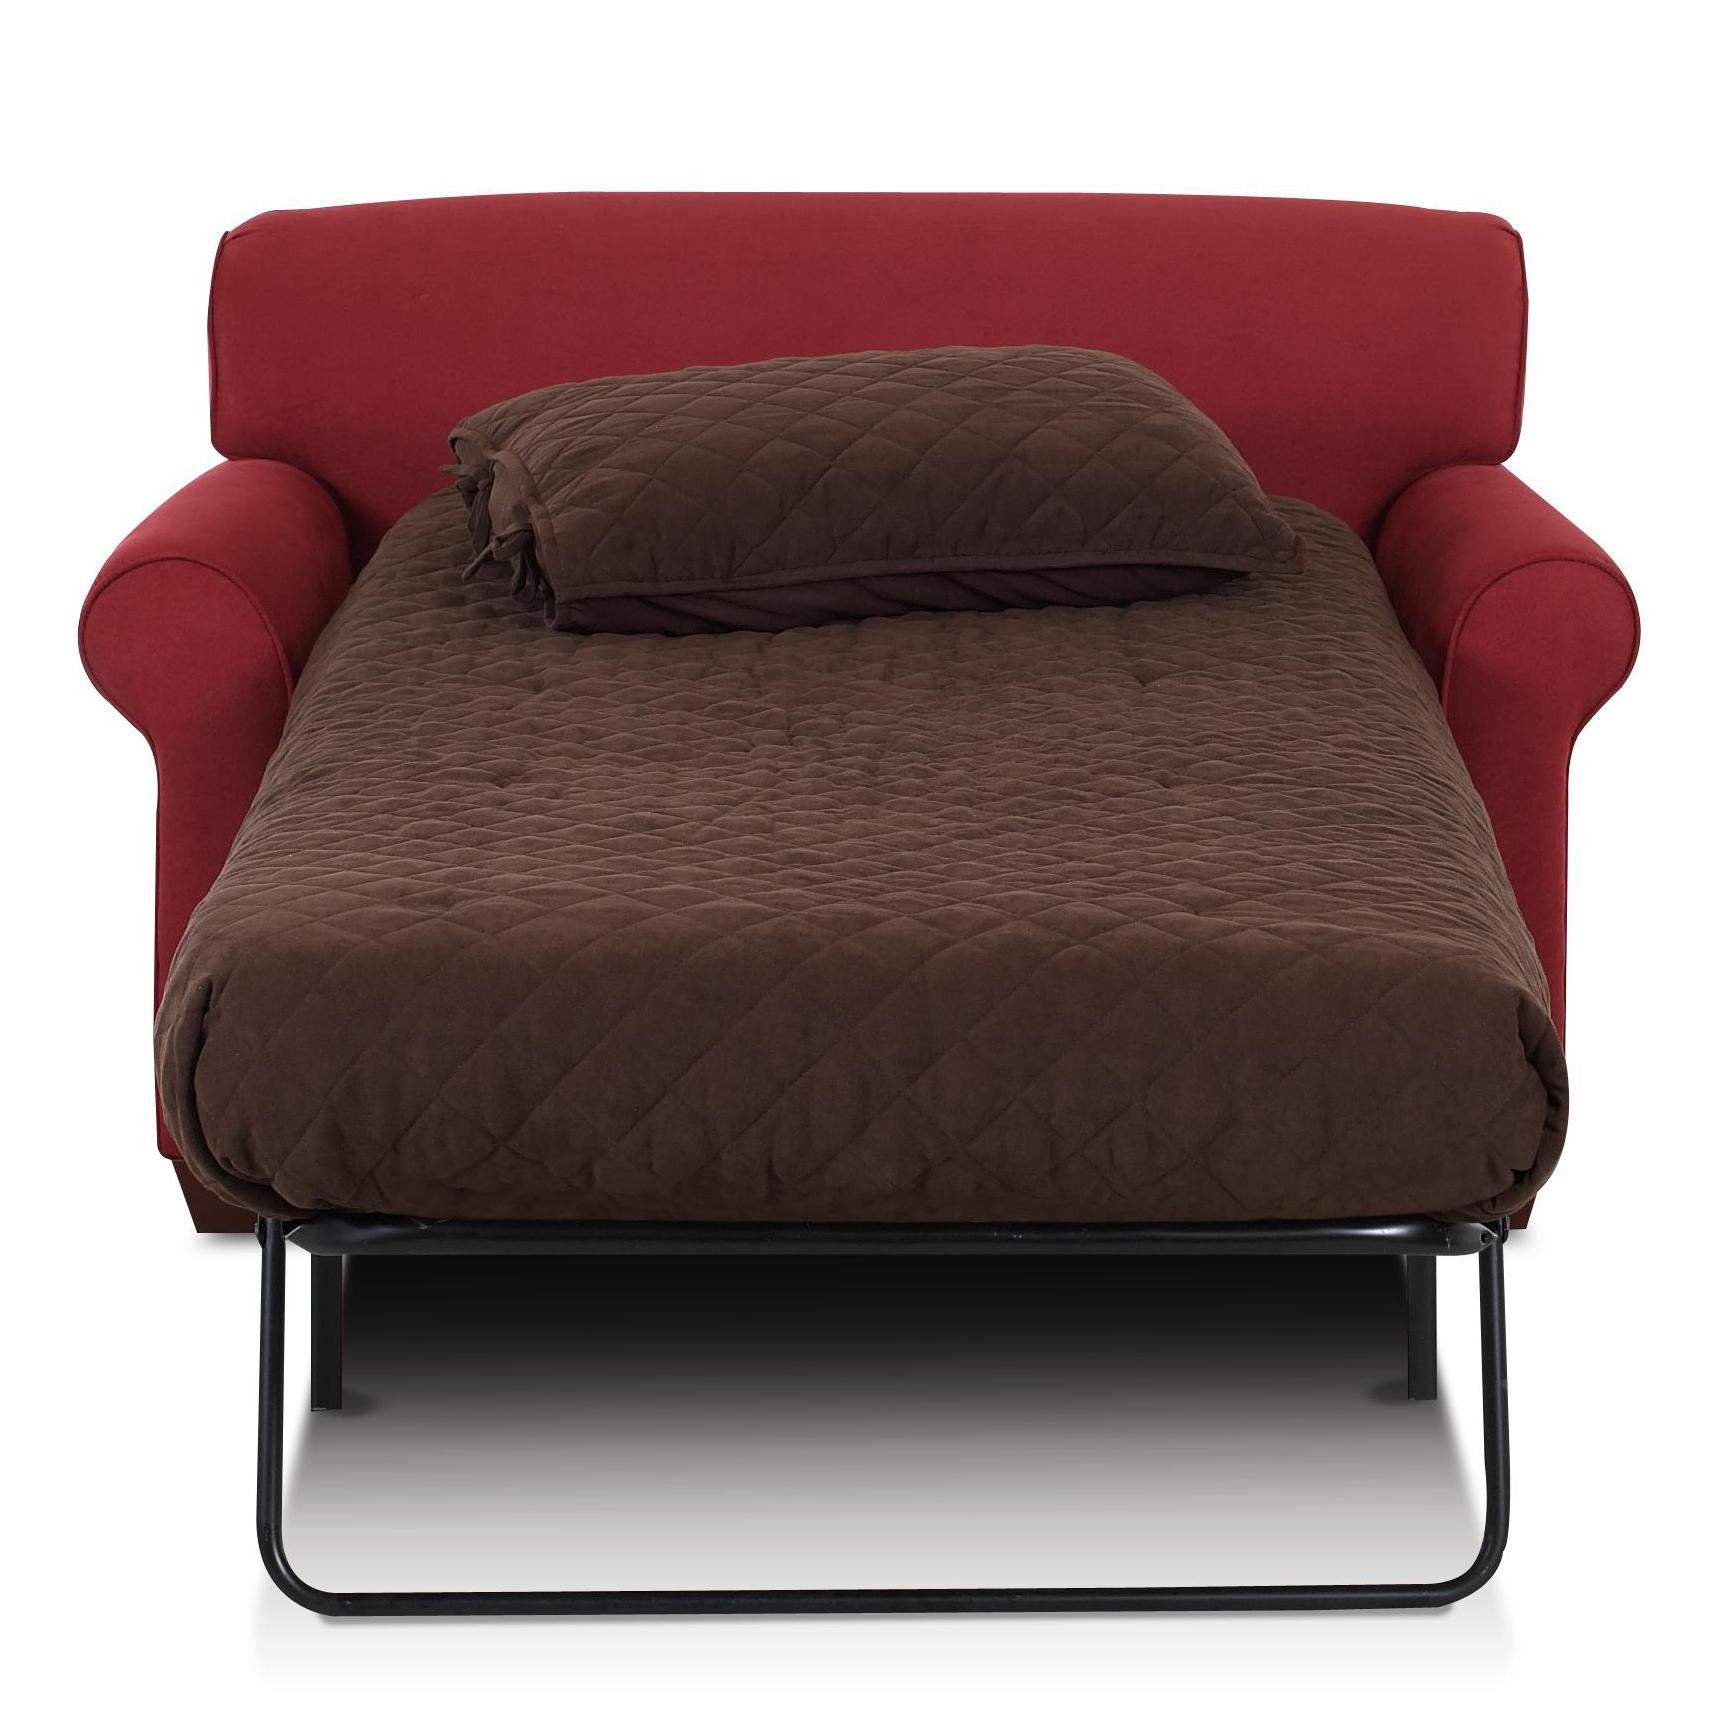 Mayhew Innerspring Chair Sleeper by Klaussner at Northeast Factory Direct